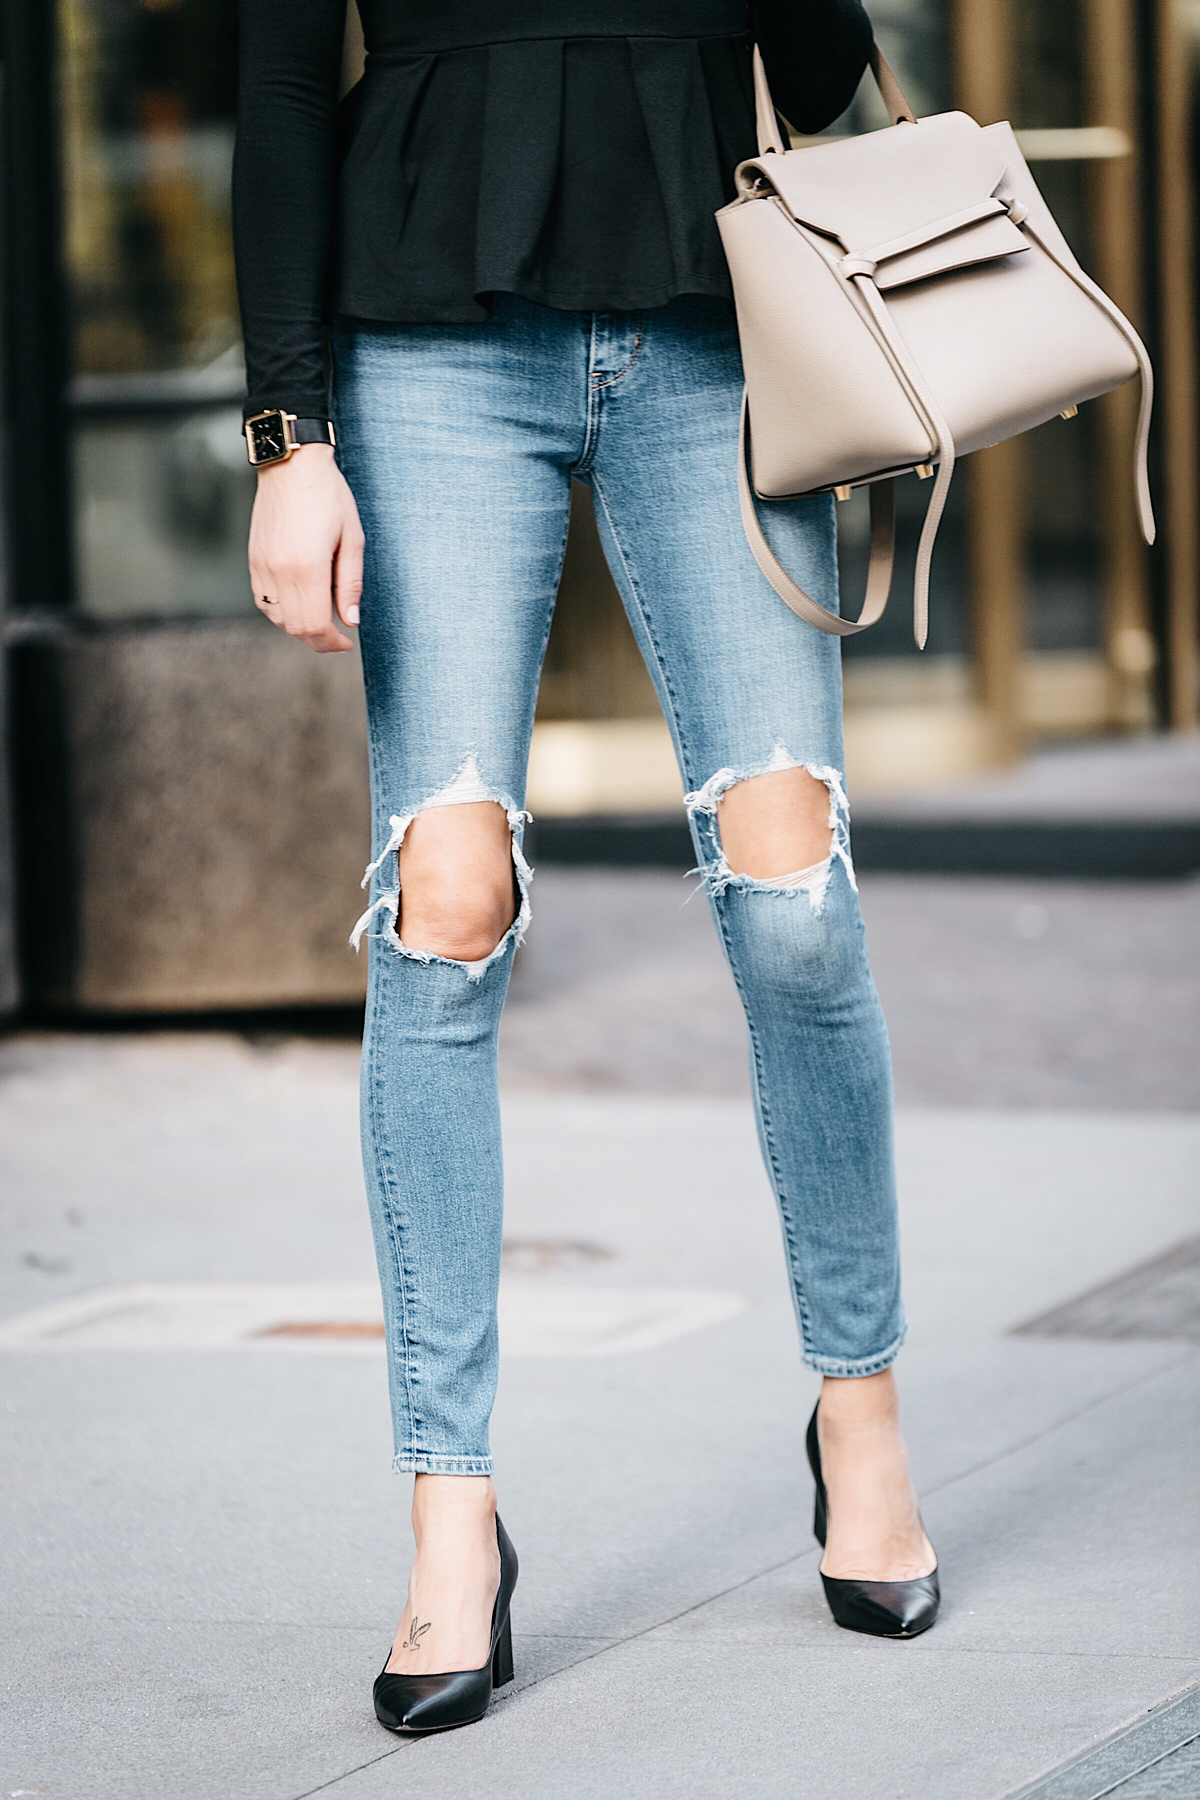 Fashion Jackson, Dallas Blogger, Street Style, Susana Monaco Ava Top, Black Peplum Top, Levis 721 High Rise Distressed Skinny Jeans, Marc Fisher Zala Pumps, Black Block Heel Pumps, Celine Belt Bag